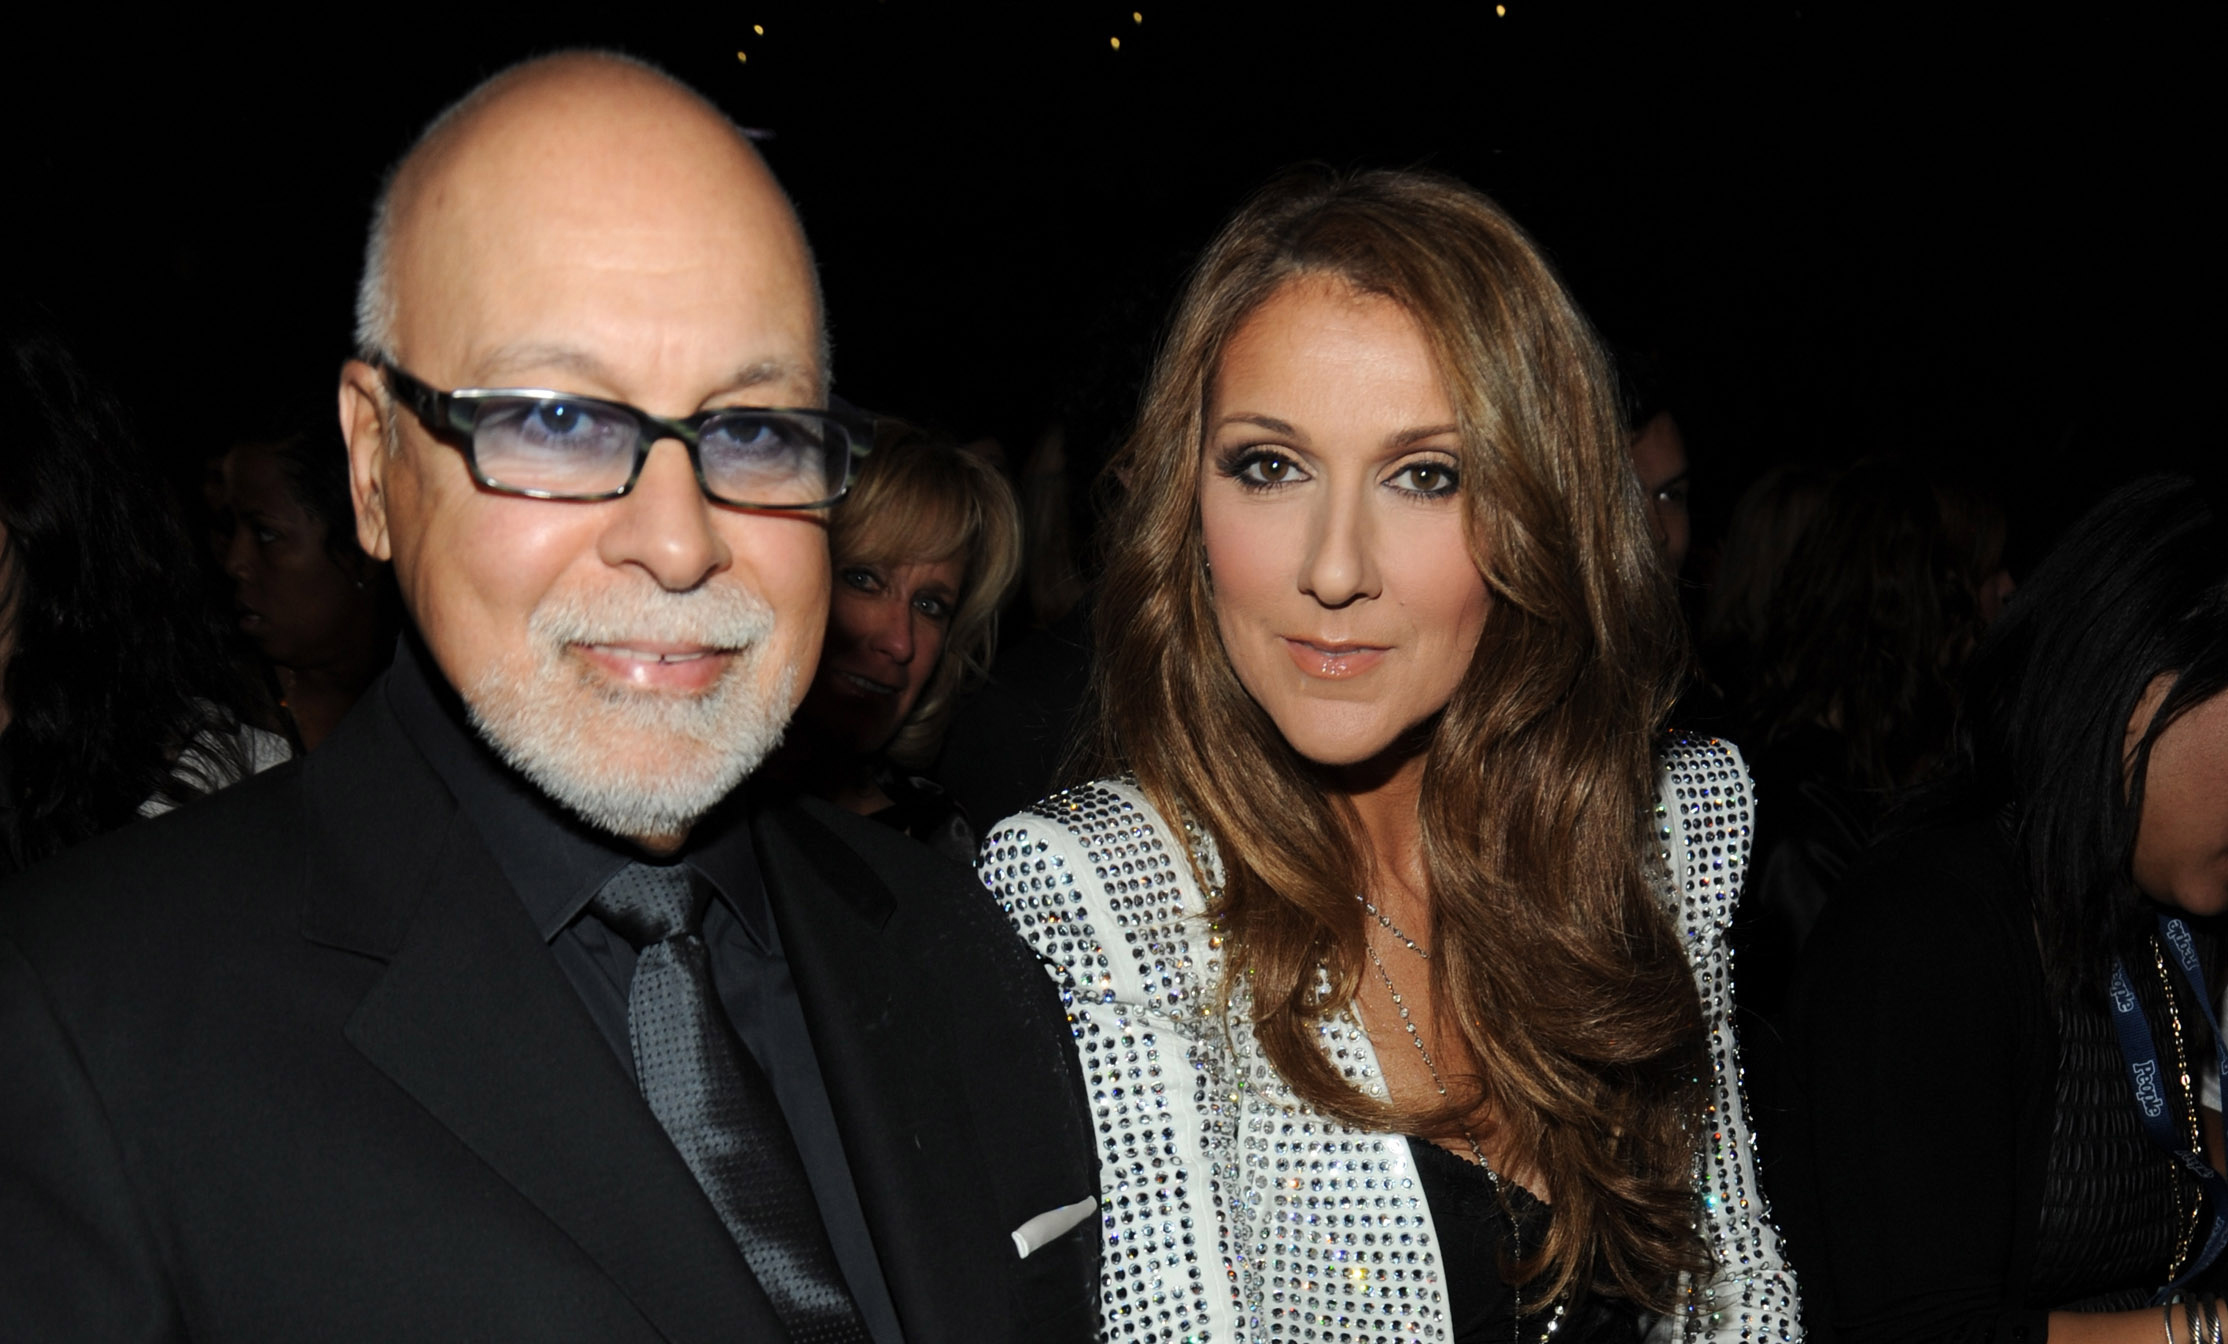 Your Light Celine Dion Today Celine Dion Rene Tease Dbebcaaccbeff